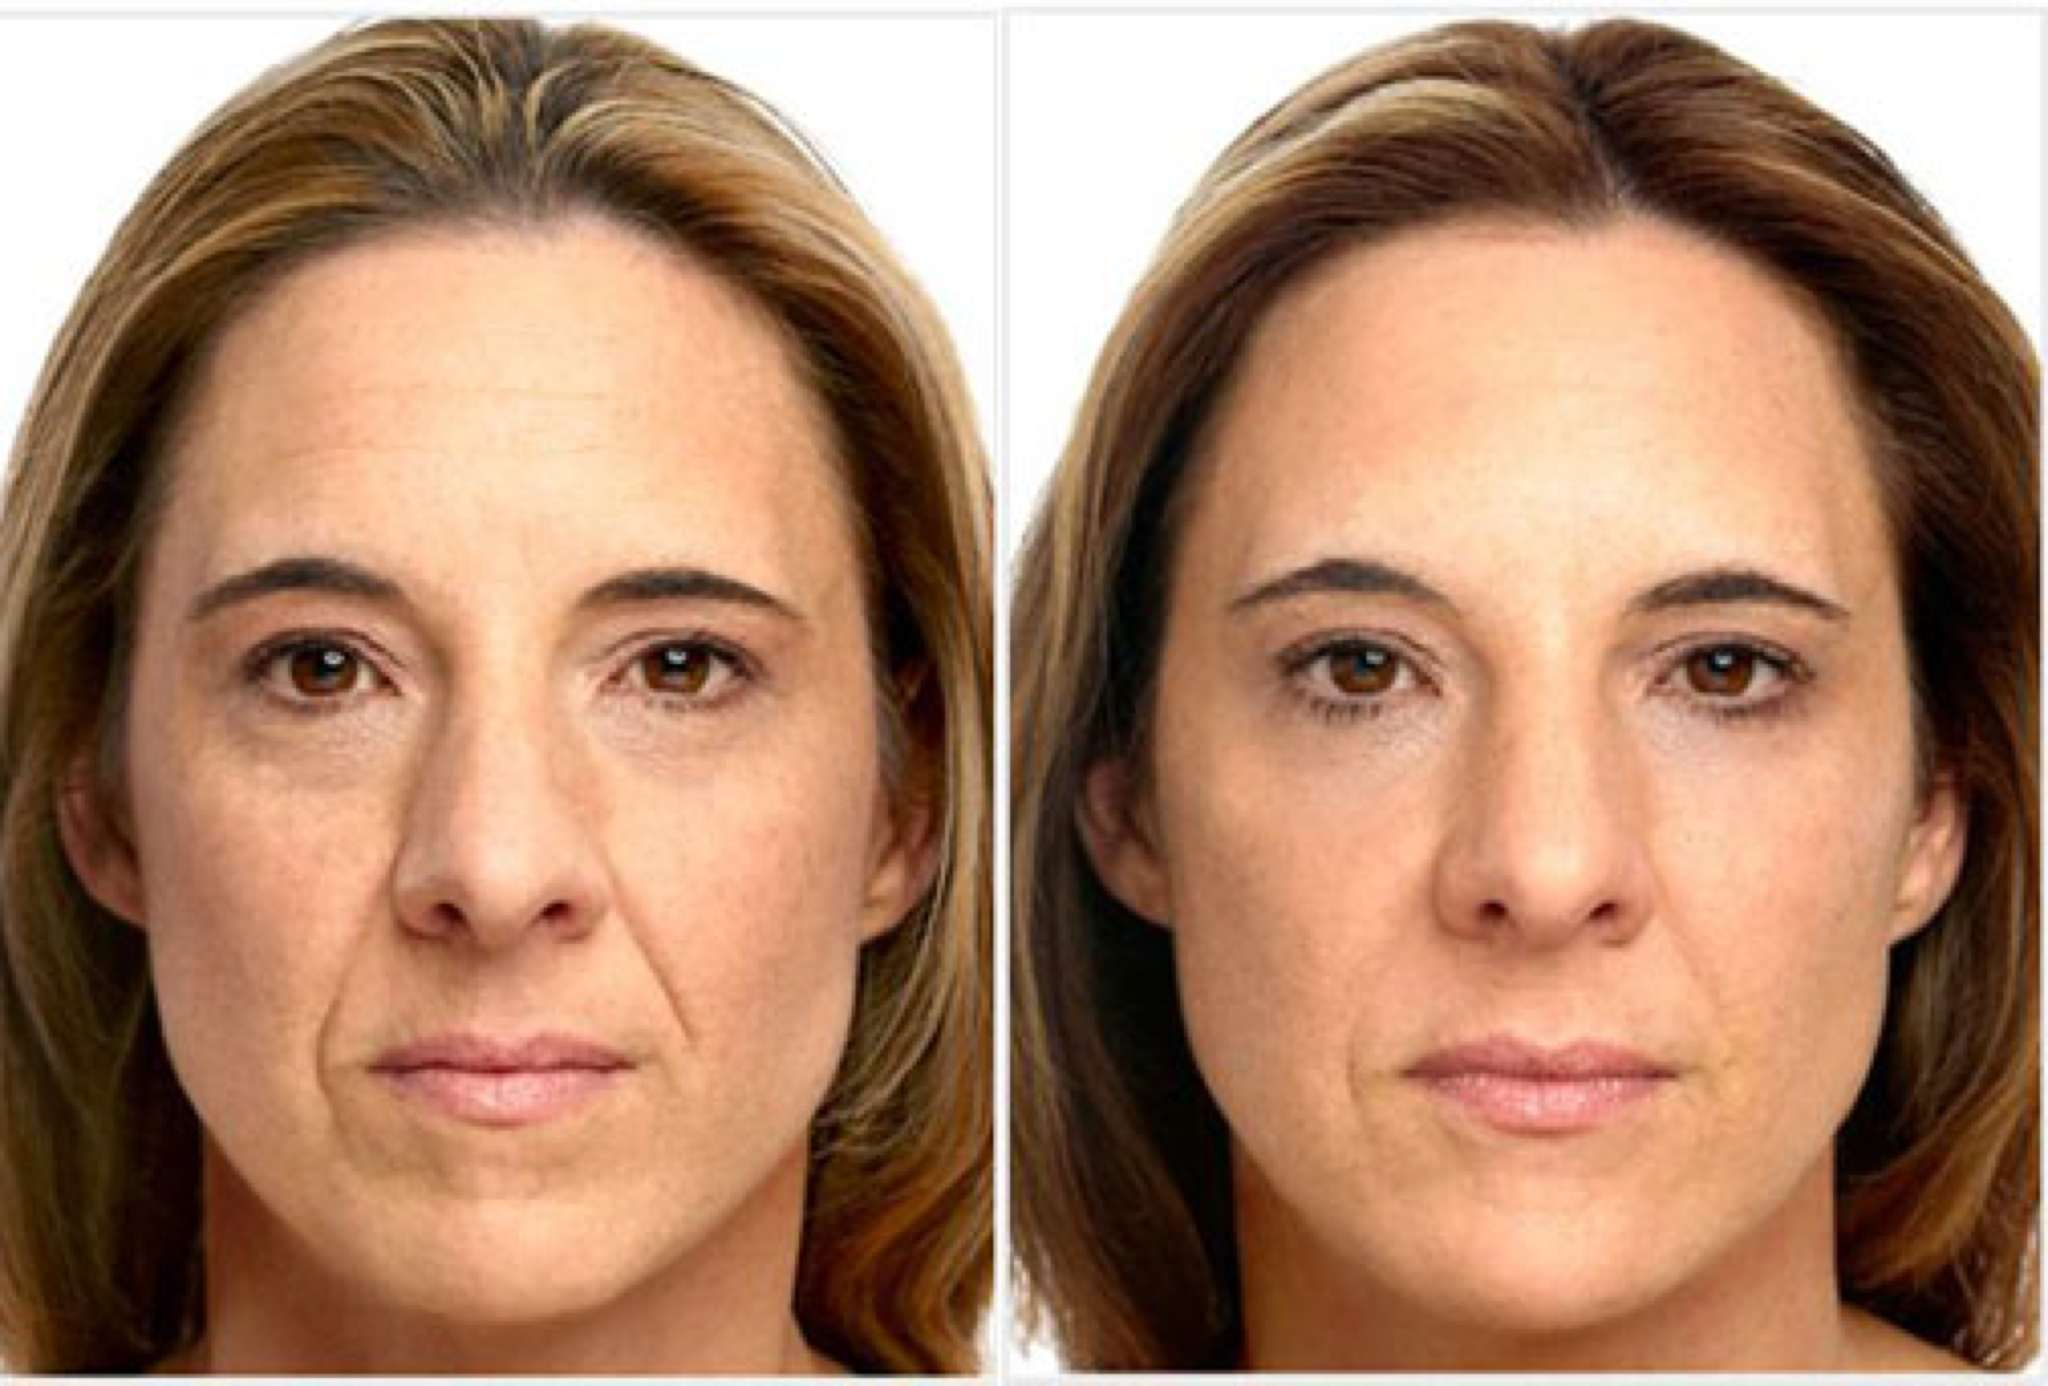 before-after-botox5-gala-b